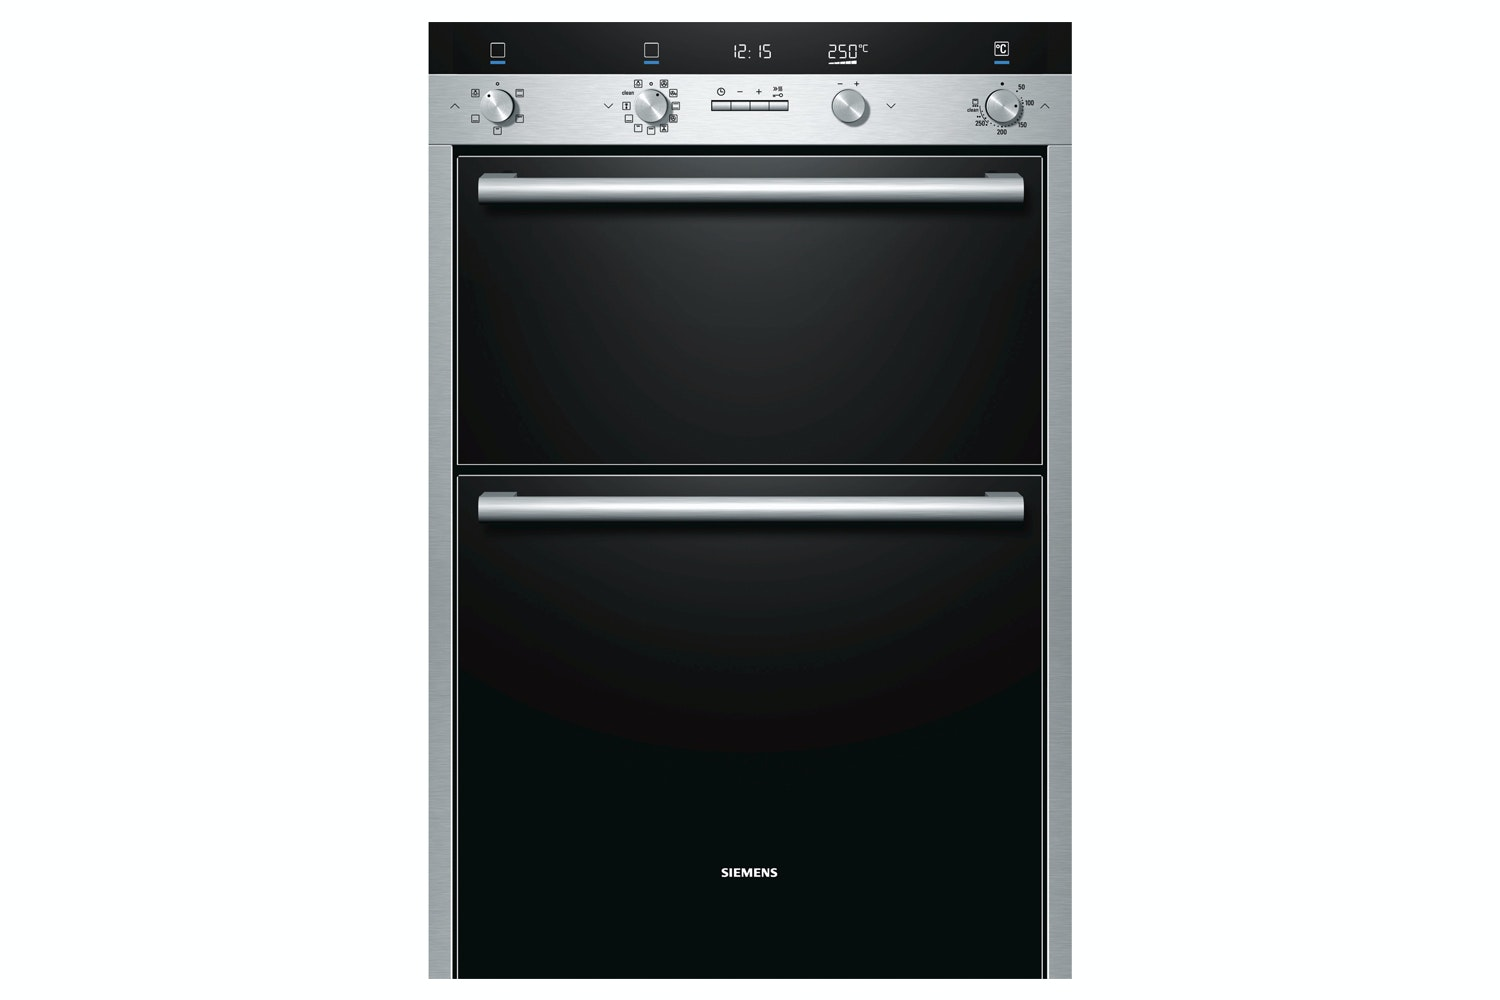 Siemens Double Oven Stainless Steel  HB55MB551B